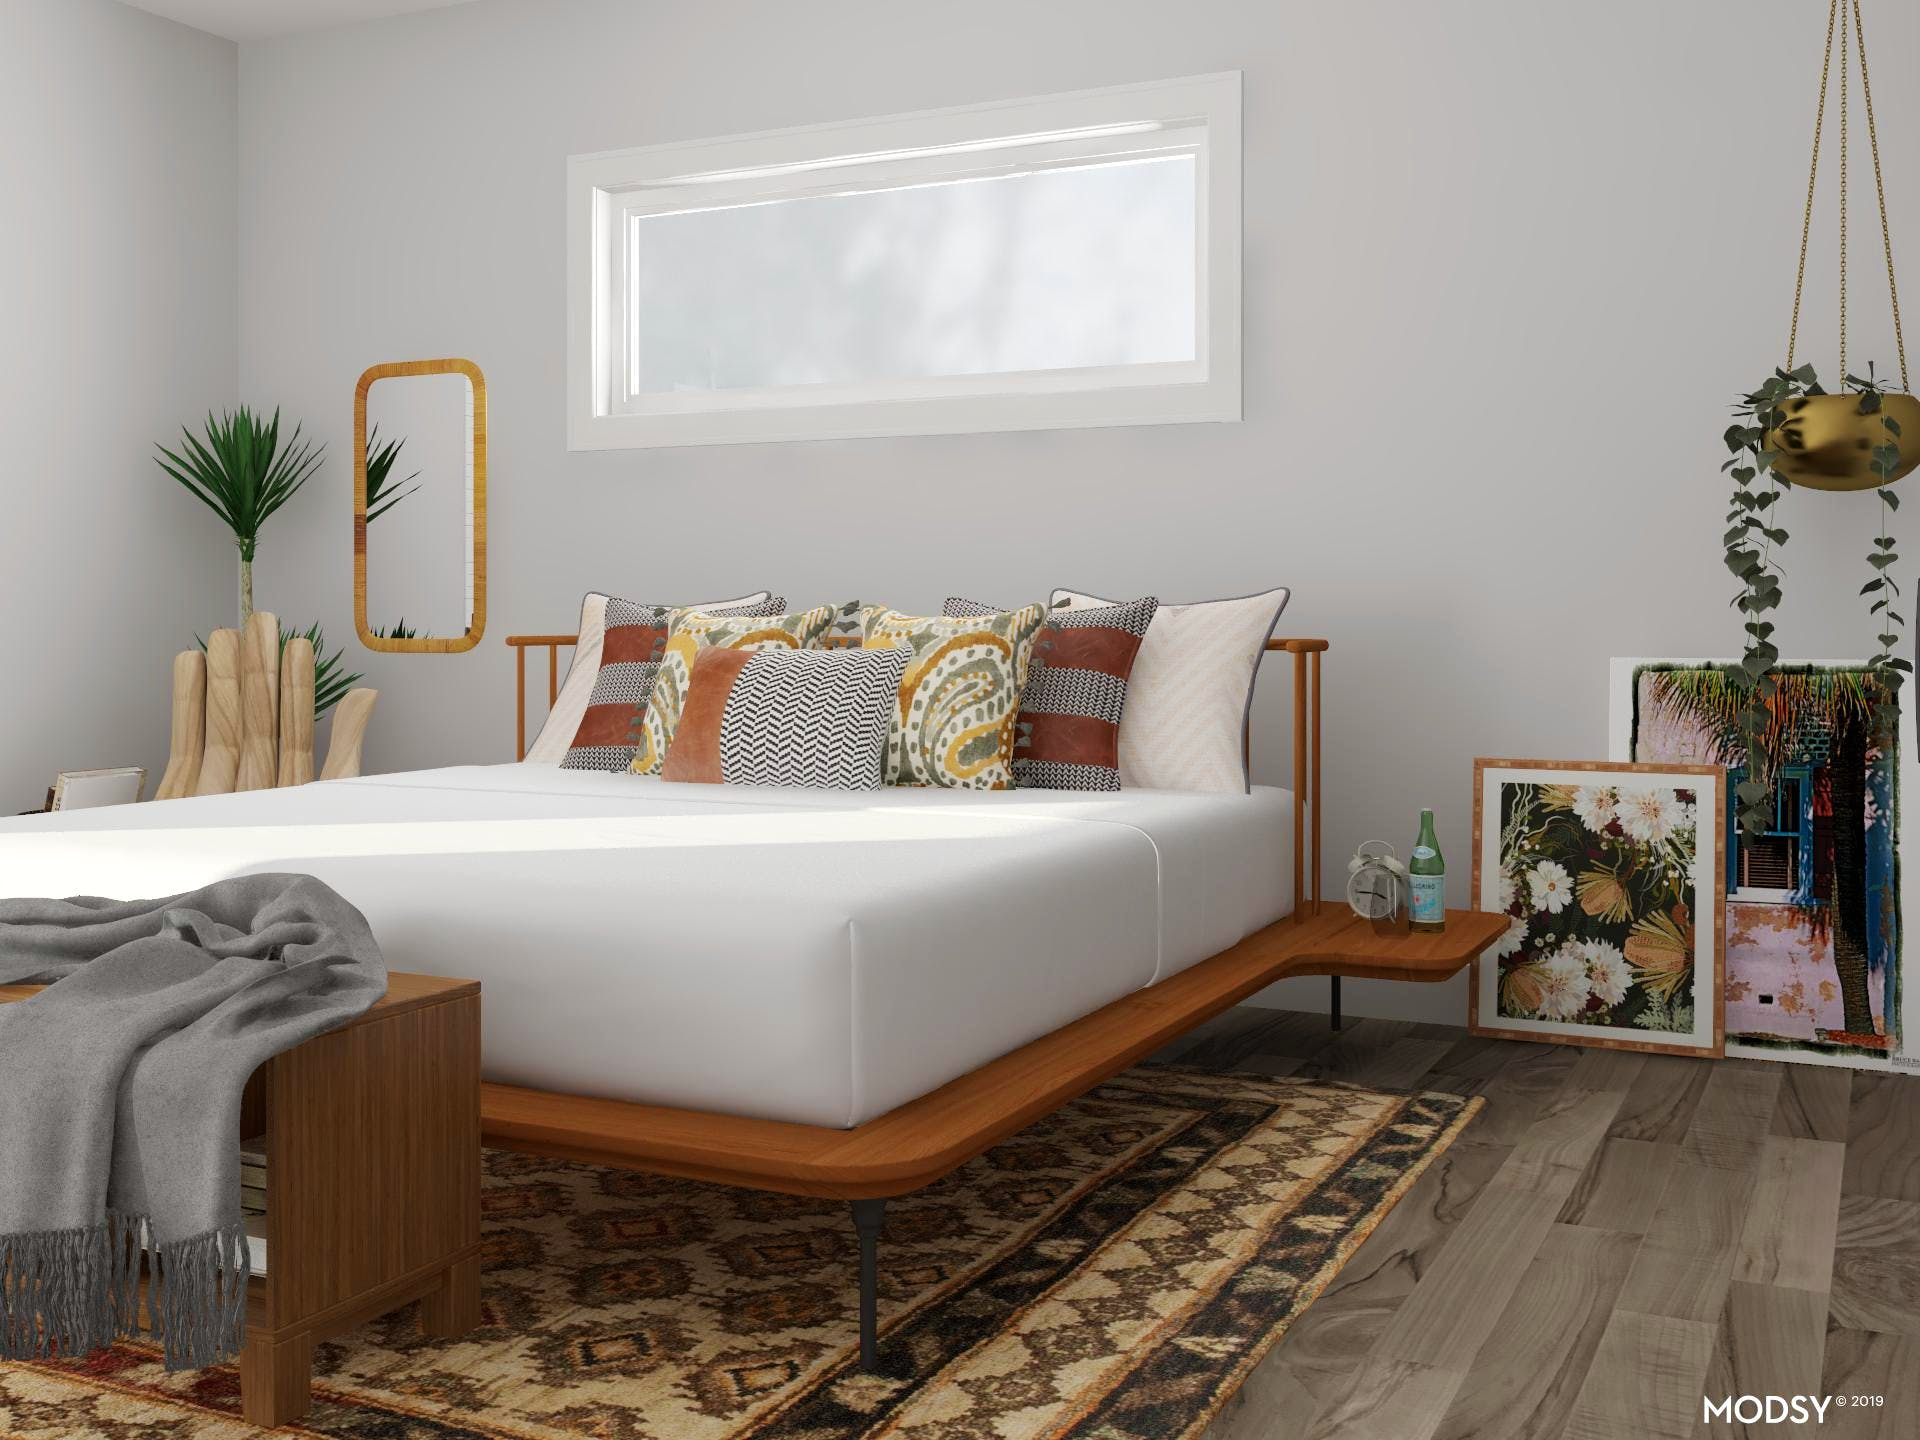 Earth Tones For Days: Bedroom | Eclectic-Style Bedroom ...